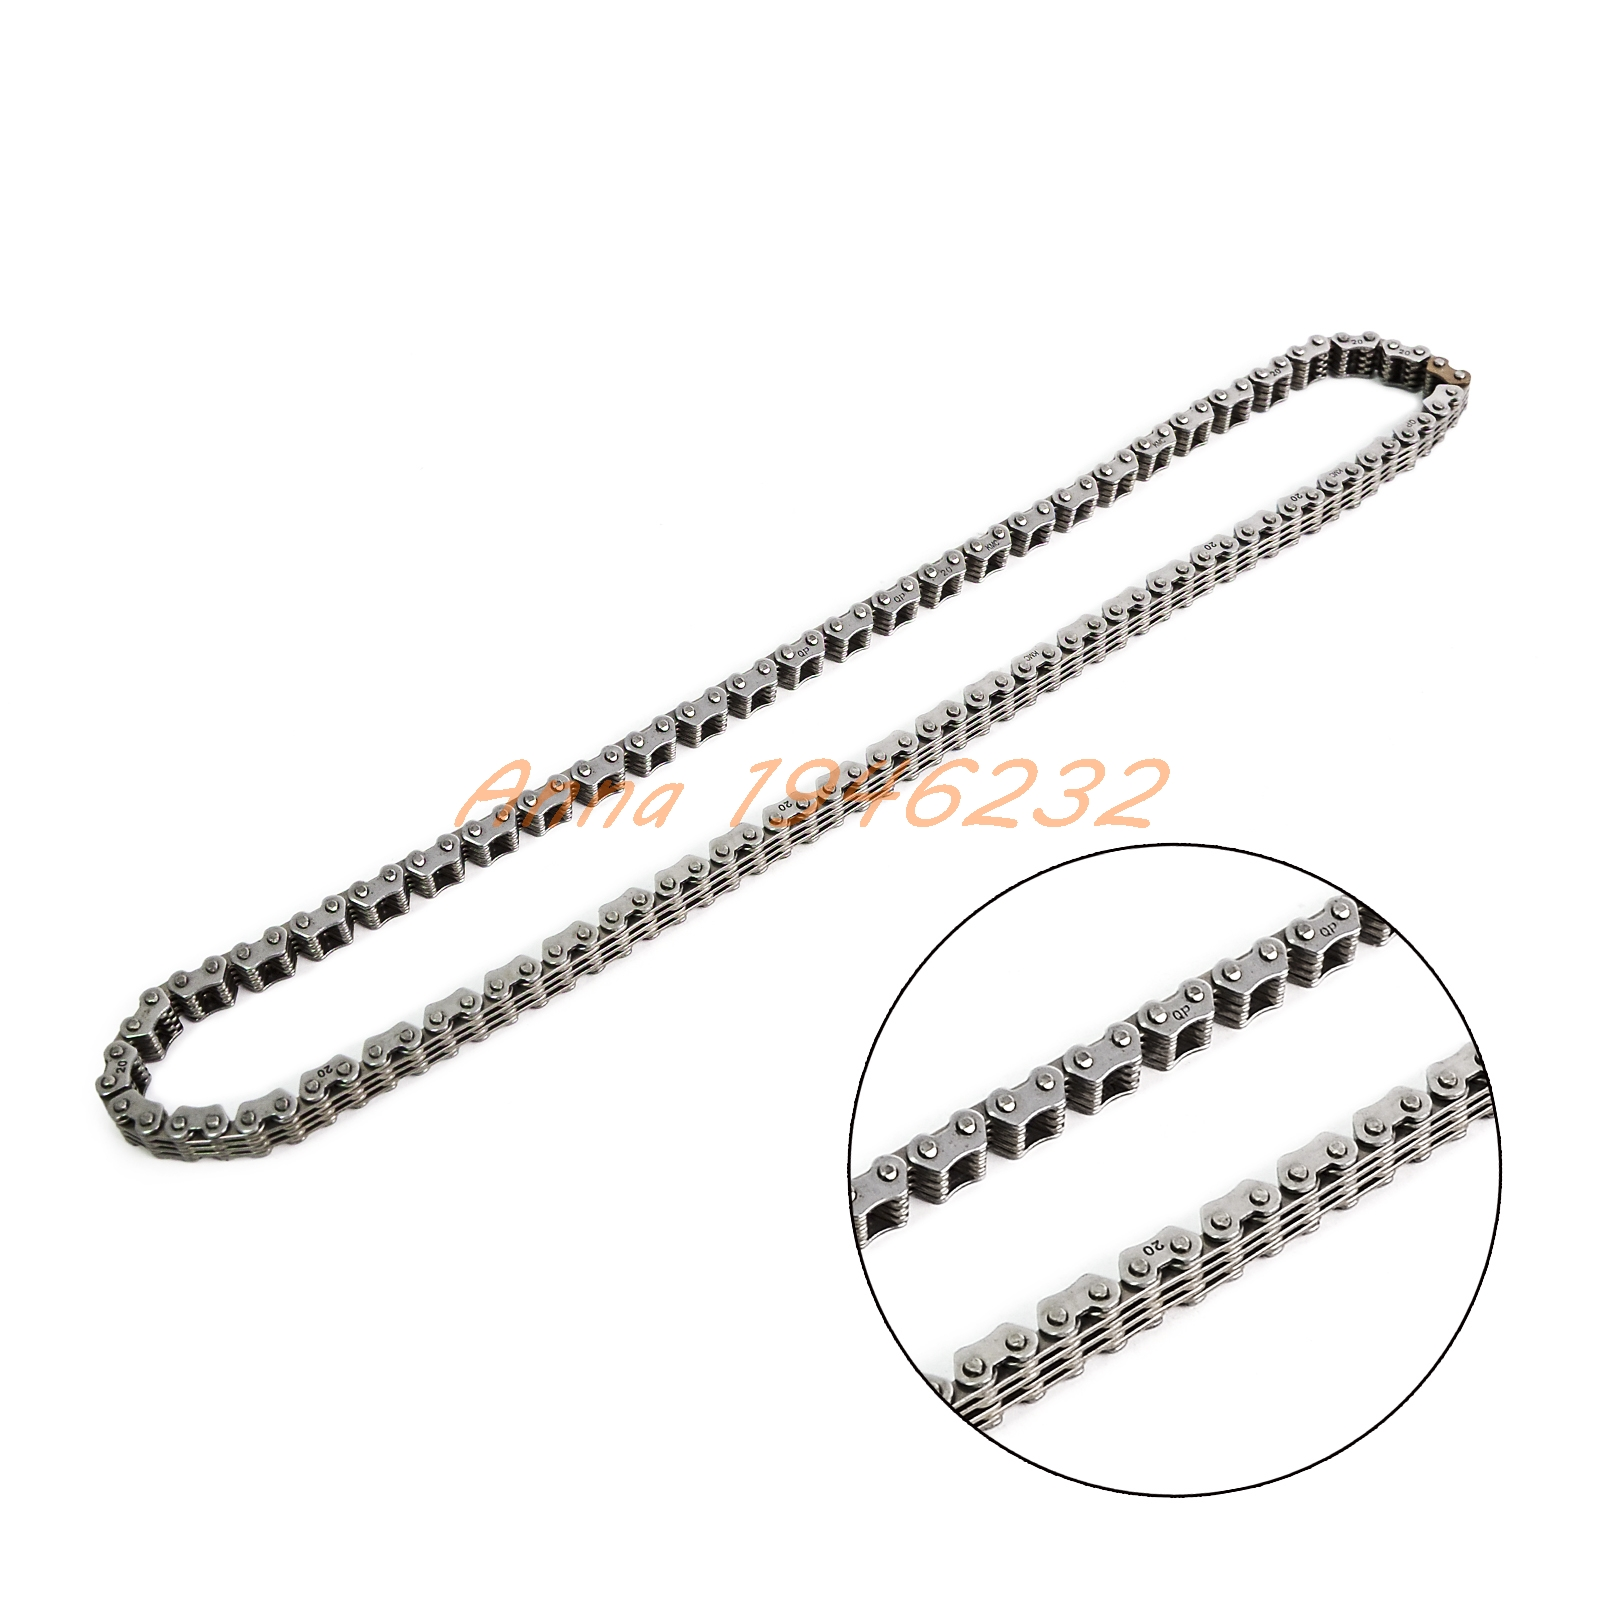 New KMC Camshaft Chain Cam Timing Chain For Suzuki GSXR600